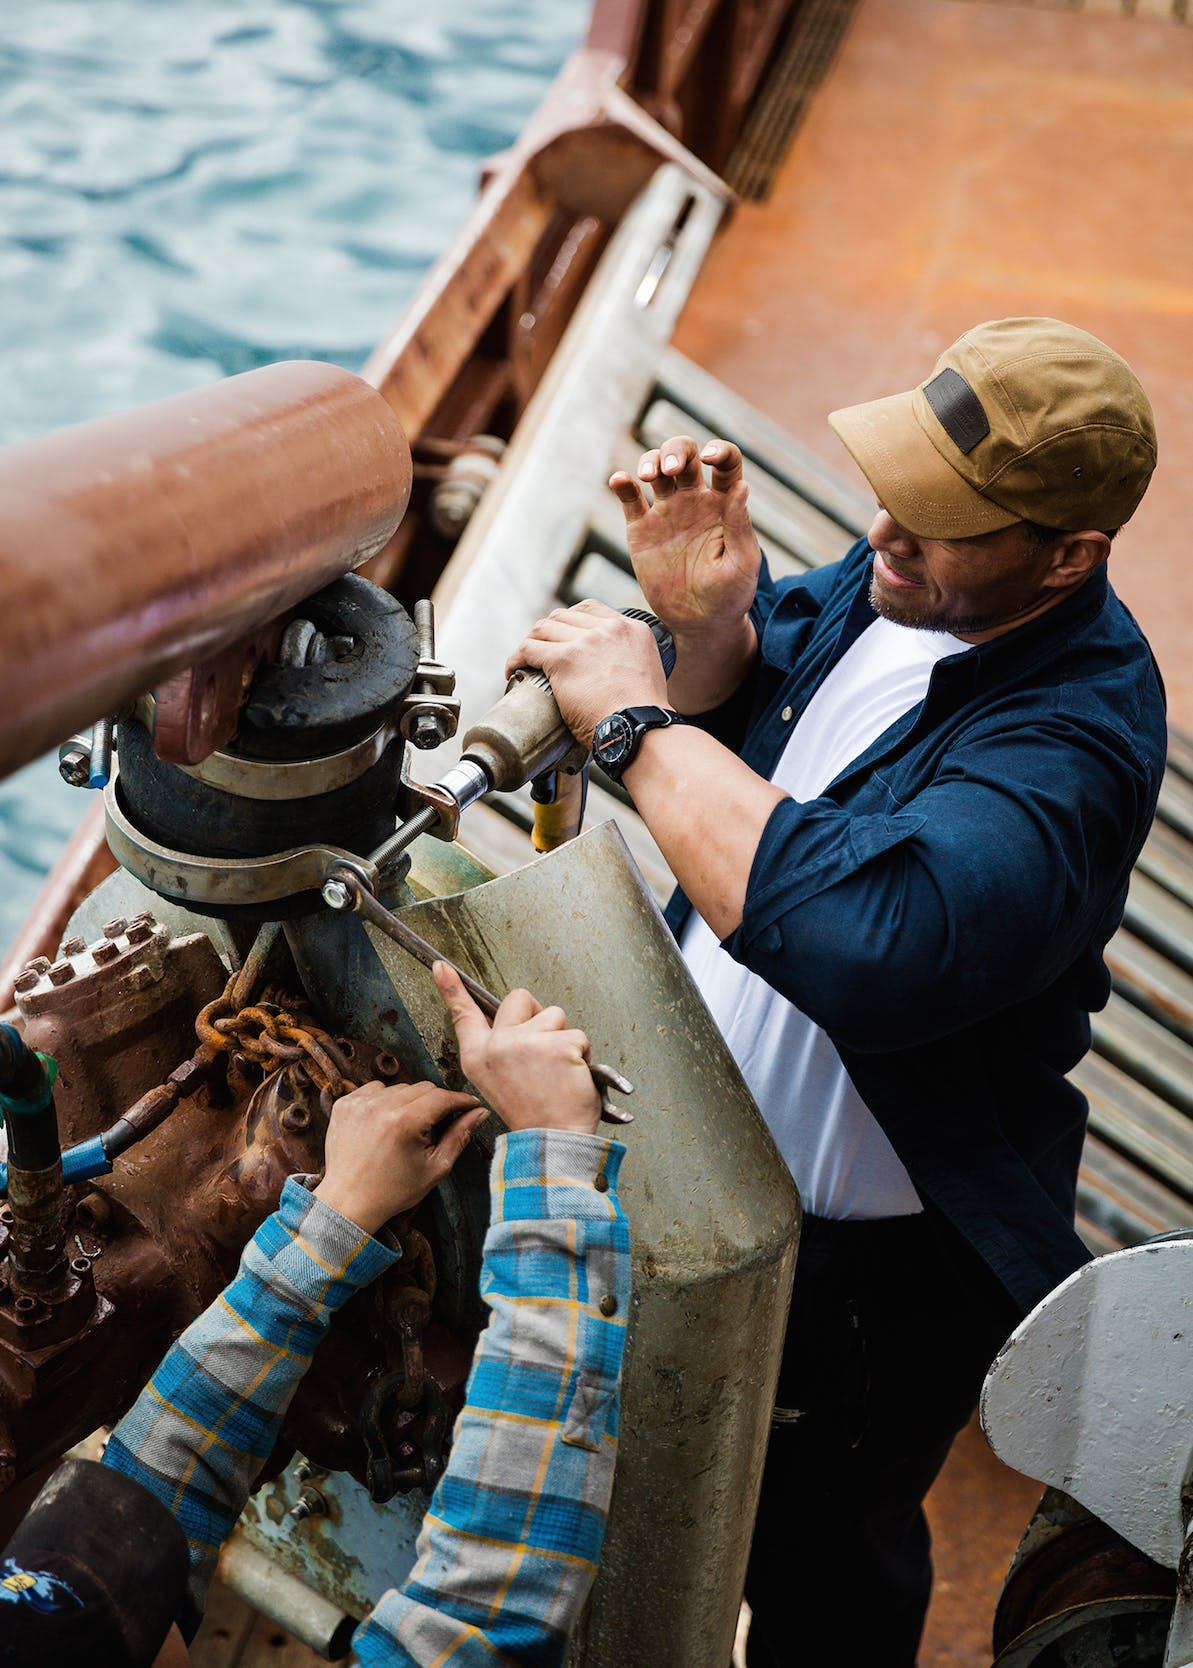 Filson Life - Self-Sufficiency on the High Seas